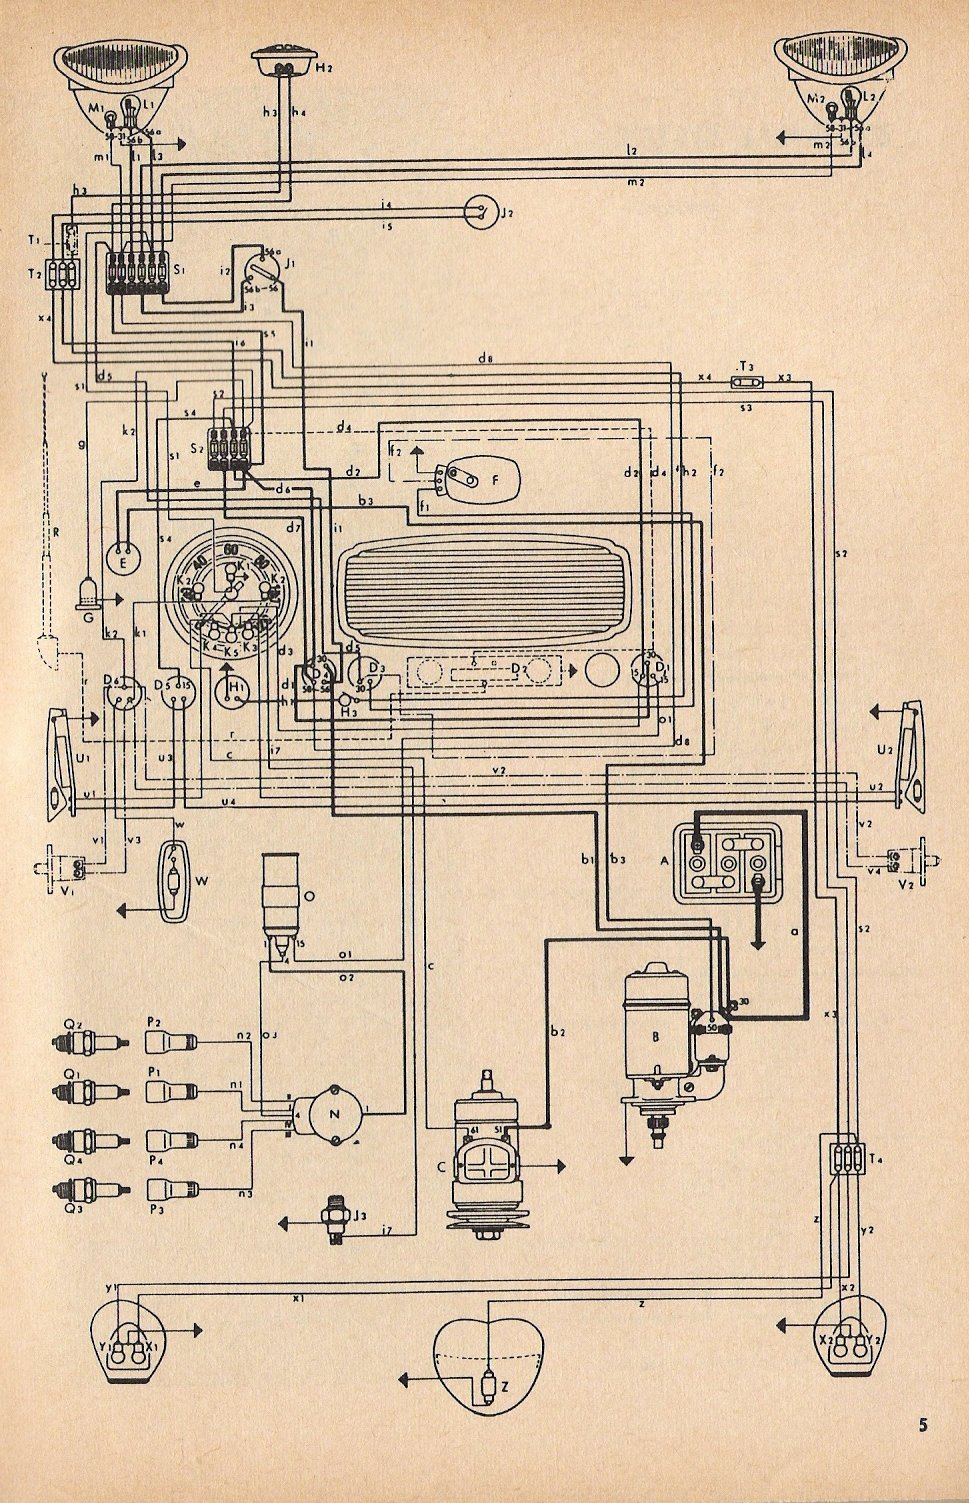 Type 1 Wiring Diagrams 1968 Mustang Headlight Harness Diagram